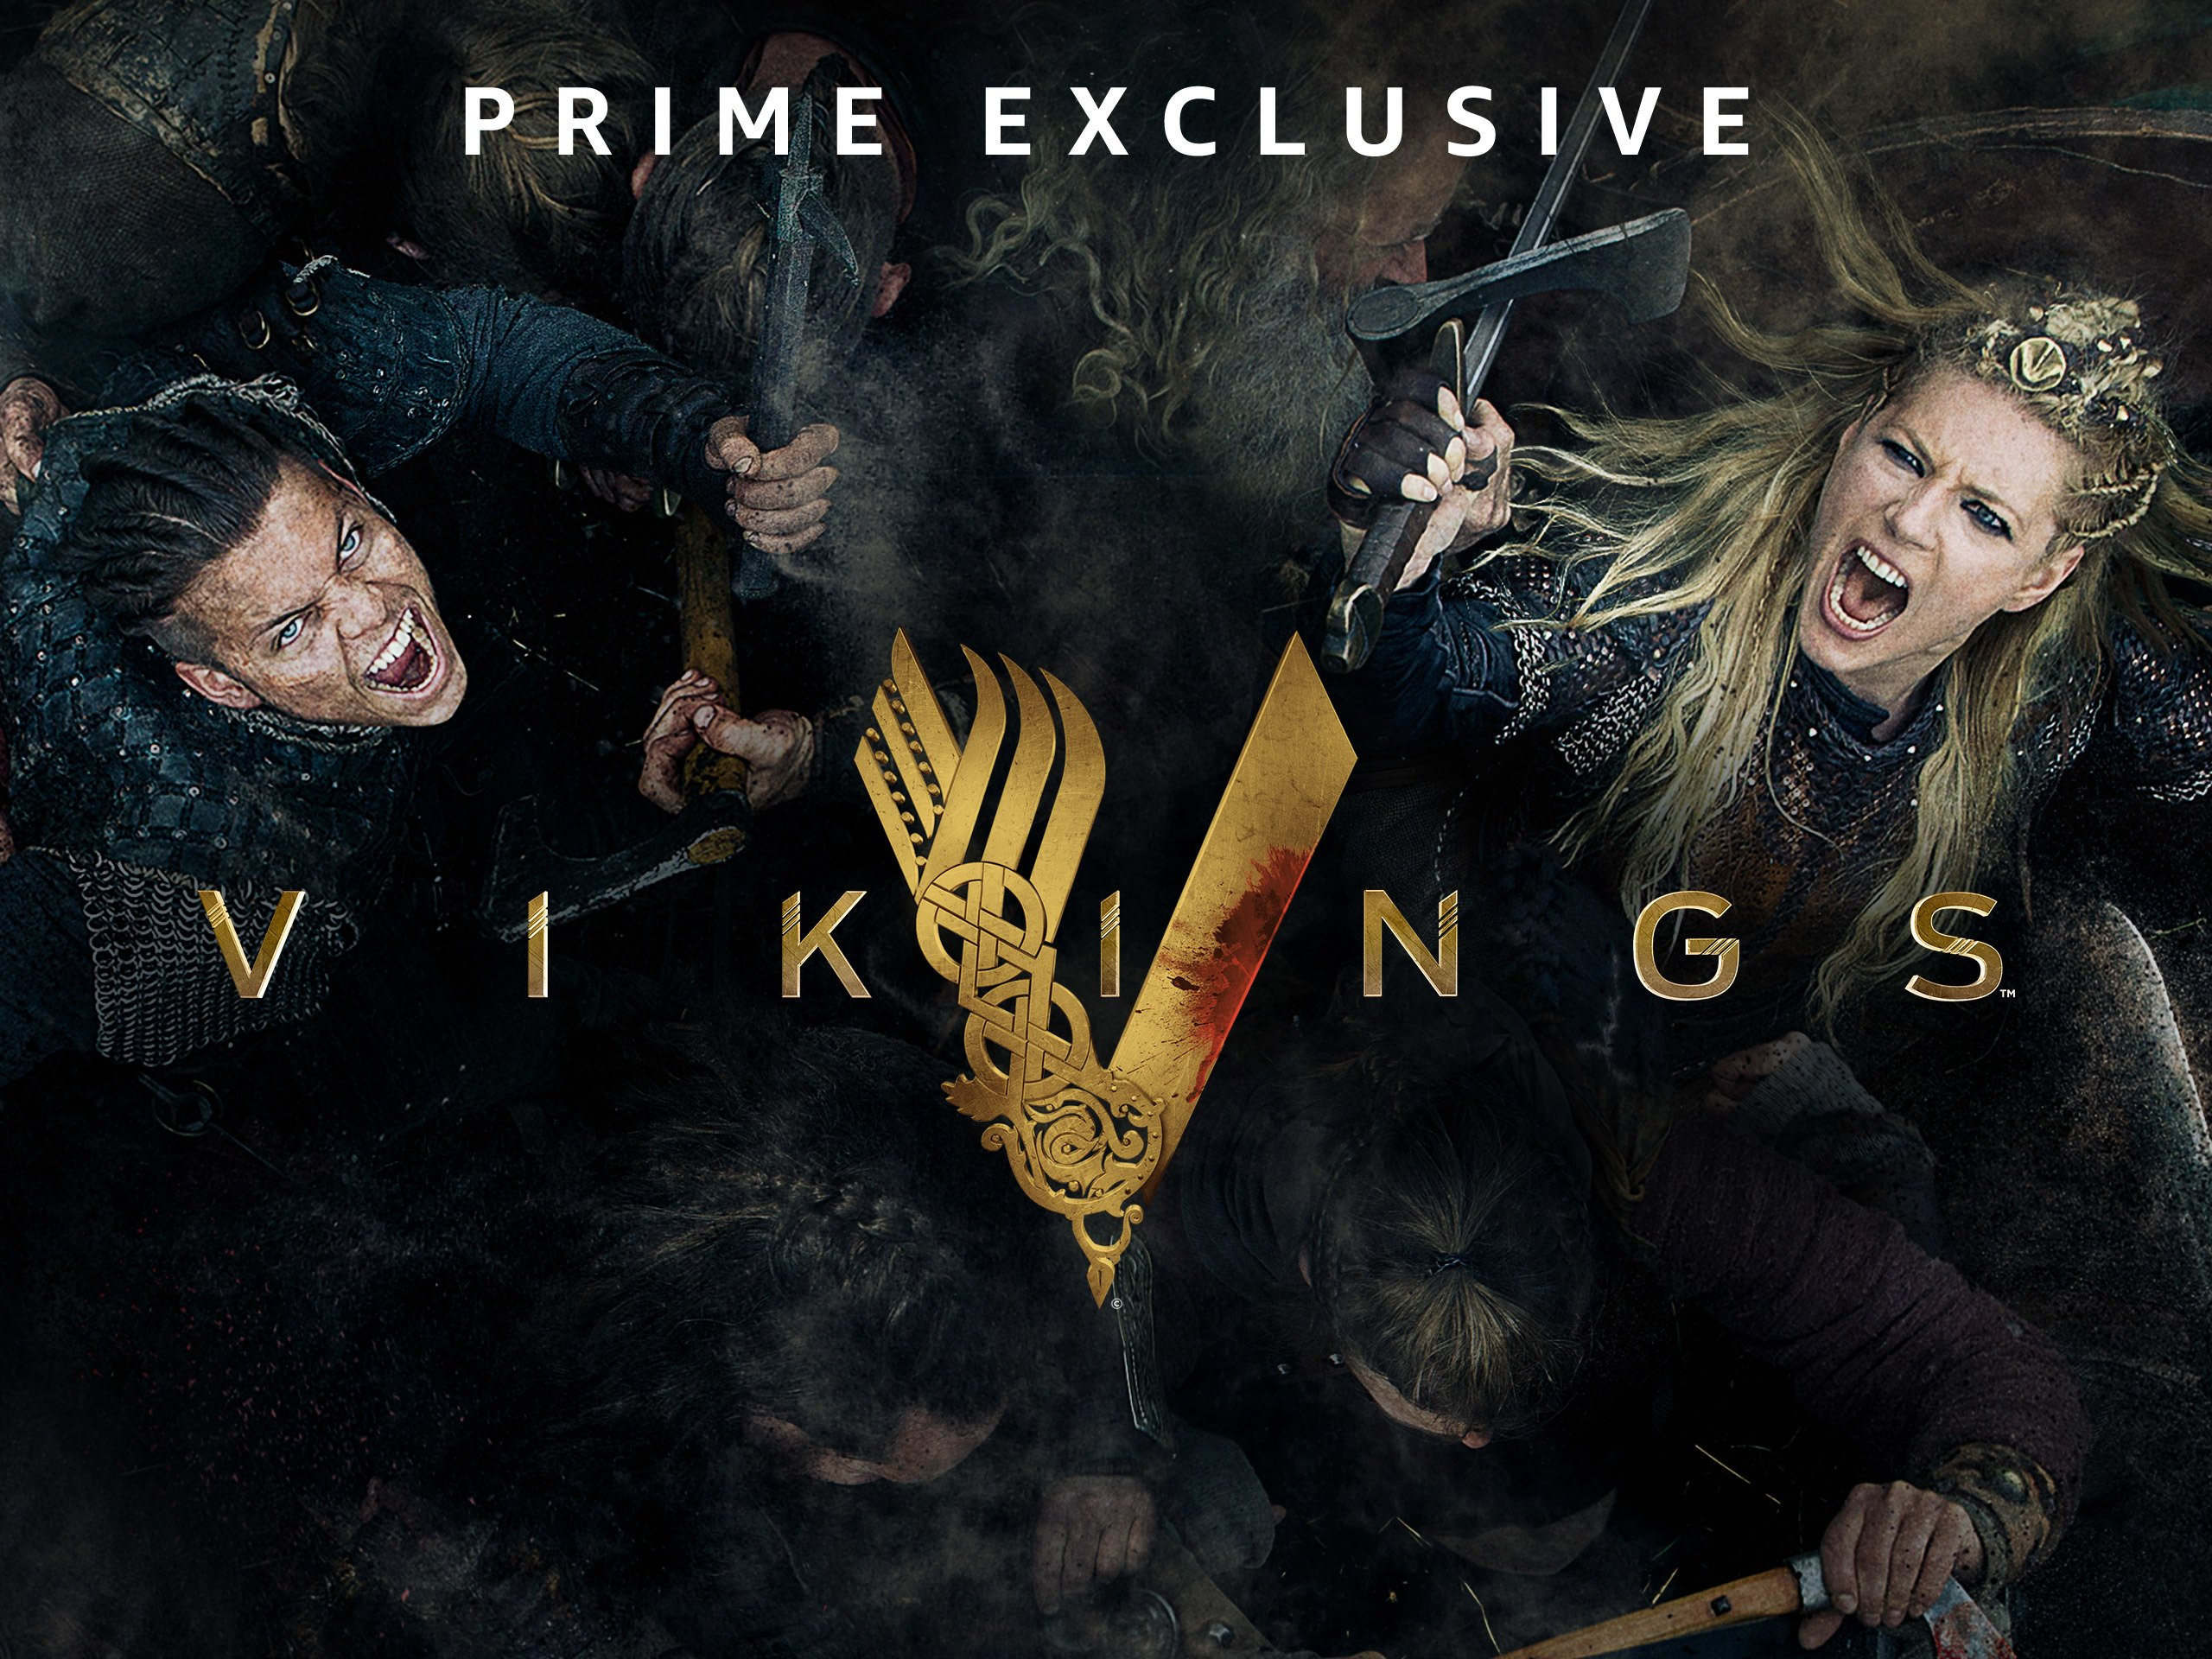 Amazon co uk: Watch Vikings Season 5 - Part 1 | Prime Video